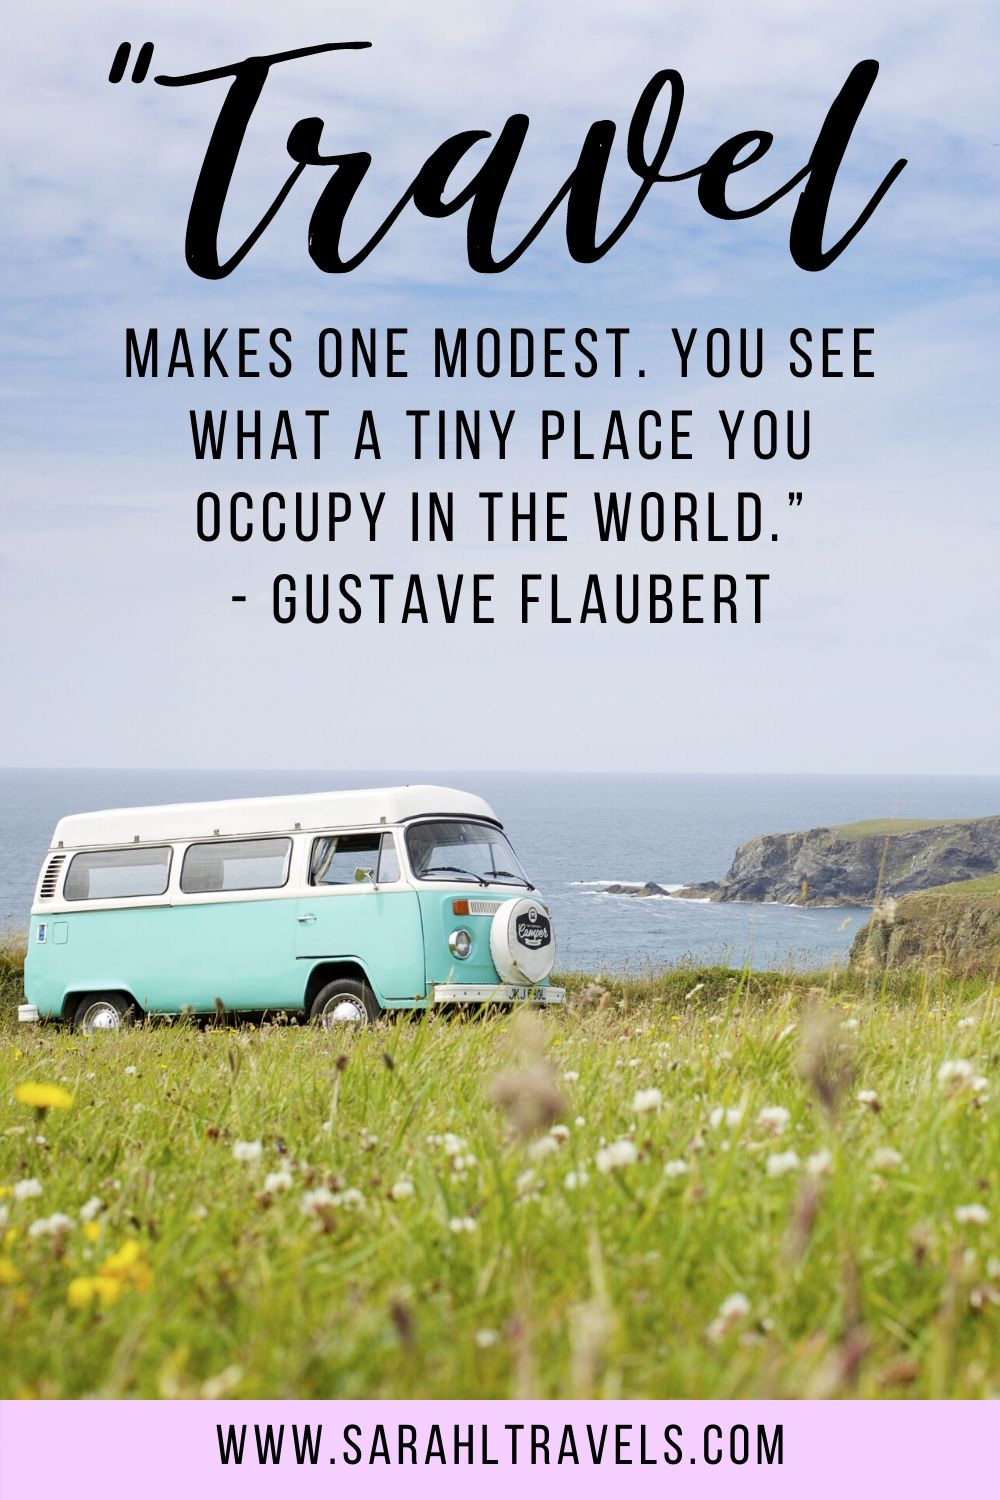 """Light blue Volkswagen retro van parked on a grassy cliff with quote """"Travel makes one modest. You see what a tiny place you occupy in the world."""""""